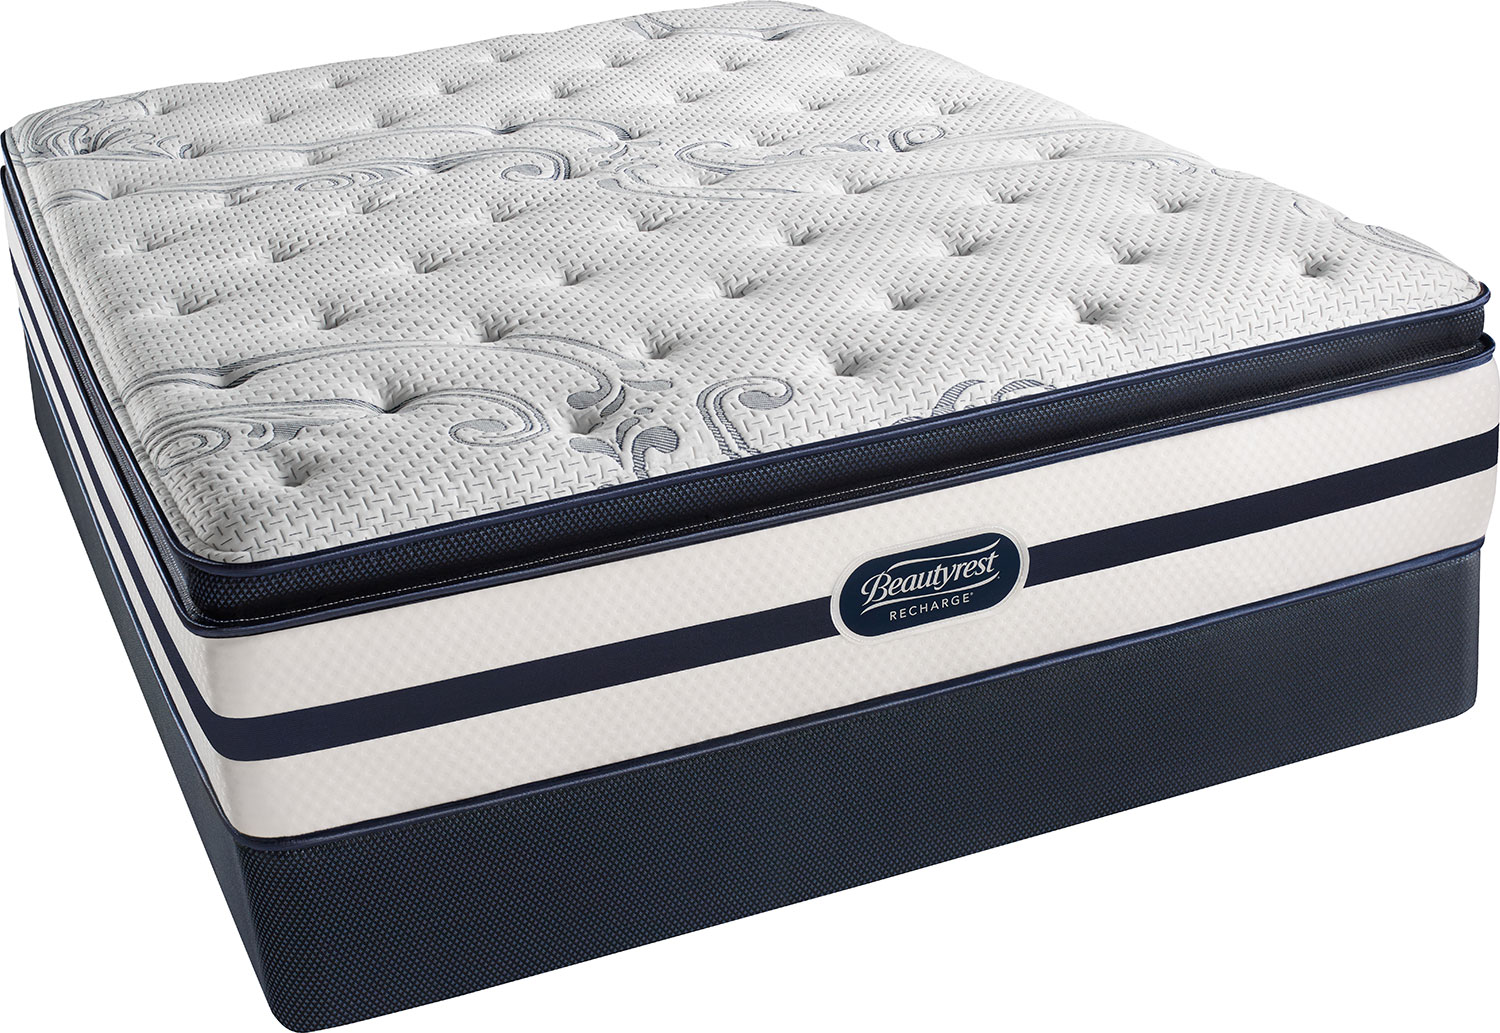 Dumont Firm Pillow Top